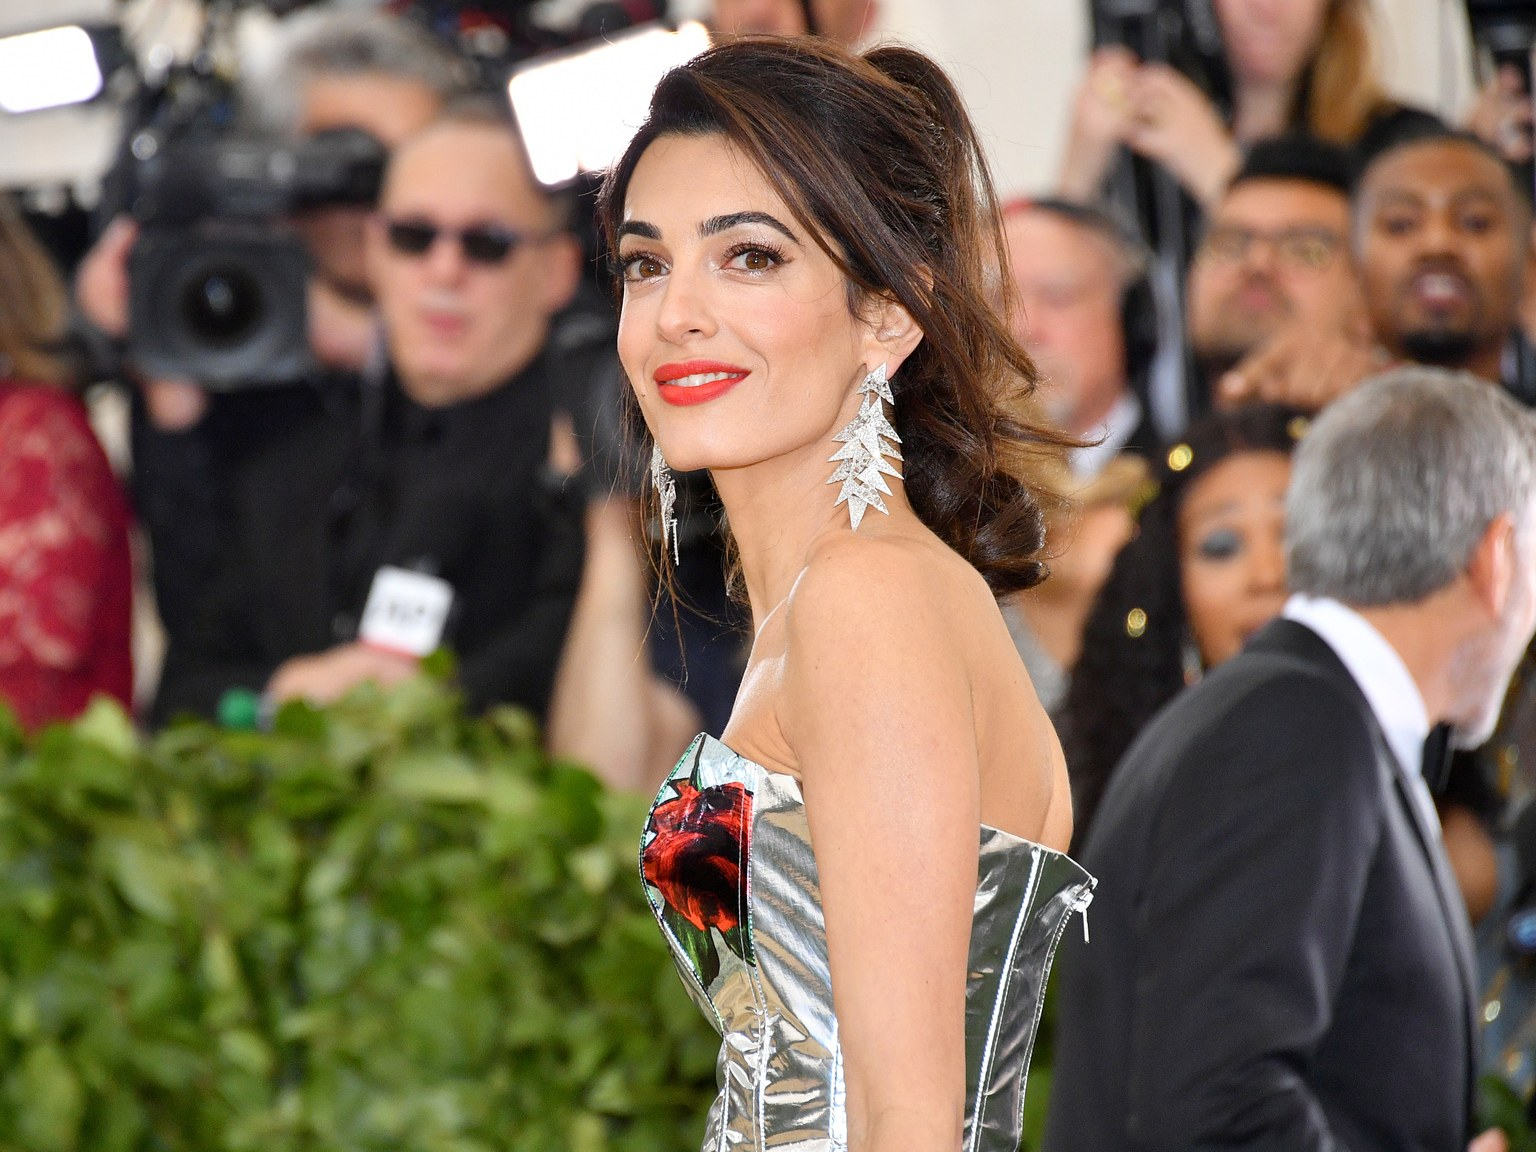 1536x1152 - Amal Clooney Wallpapers 15